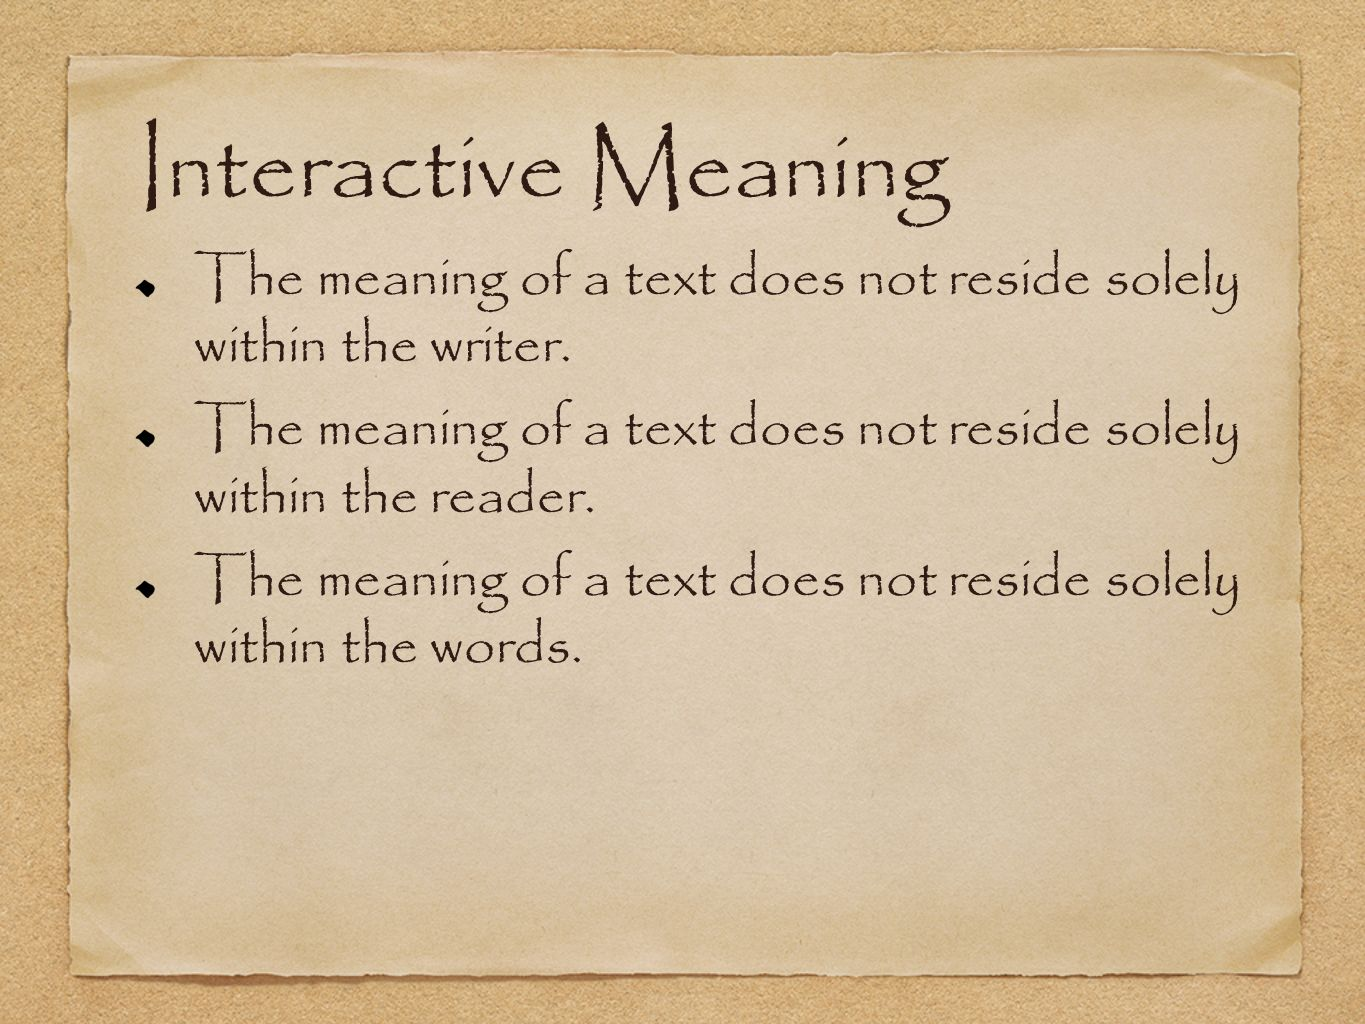 Interactive Meaning The meaning of a text does not reside solely within the writer.